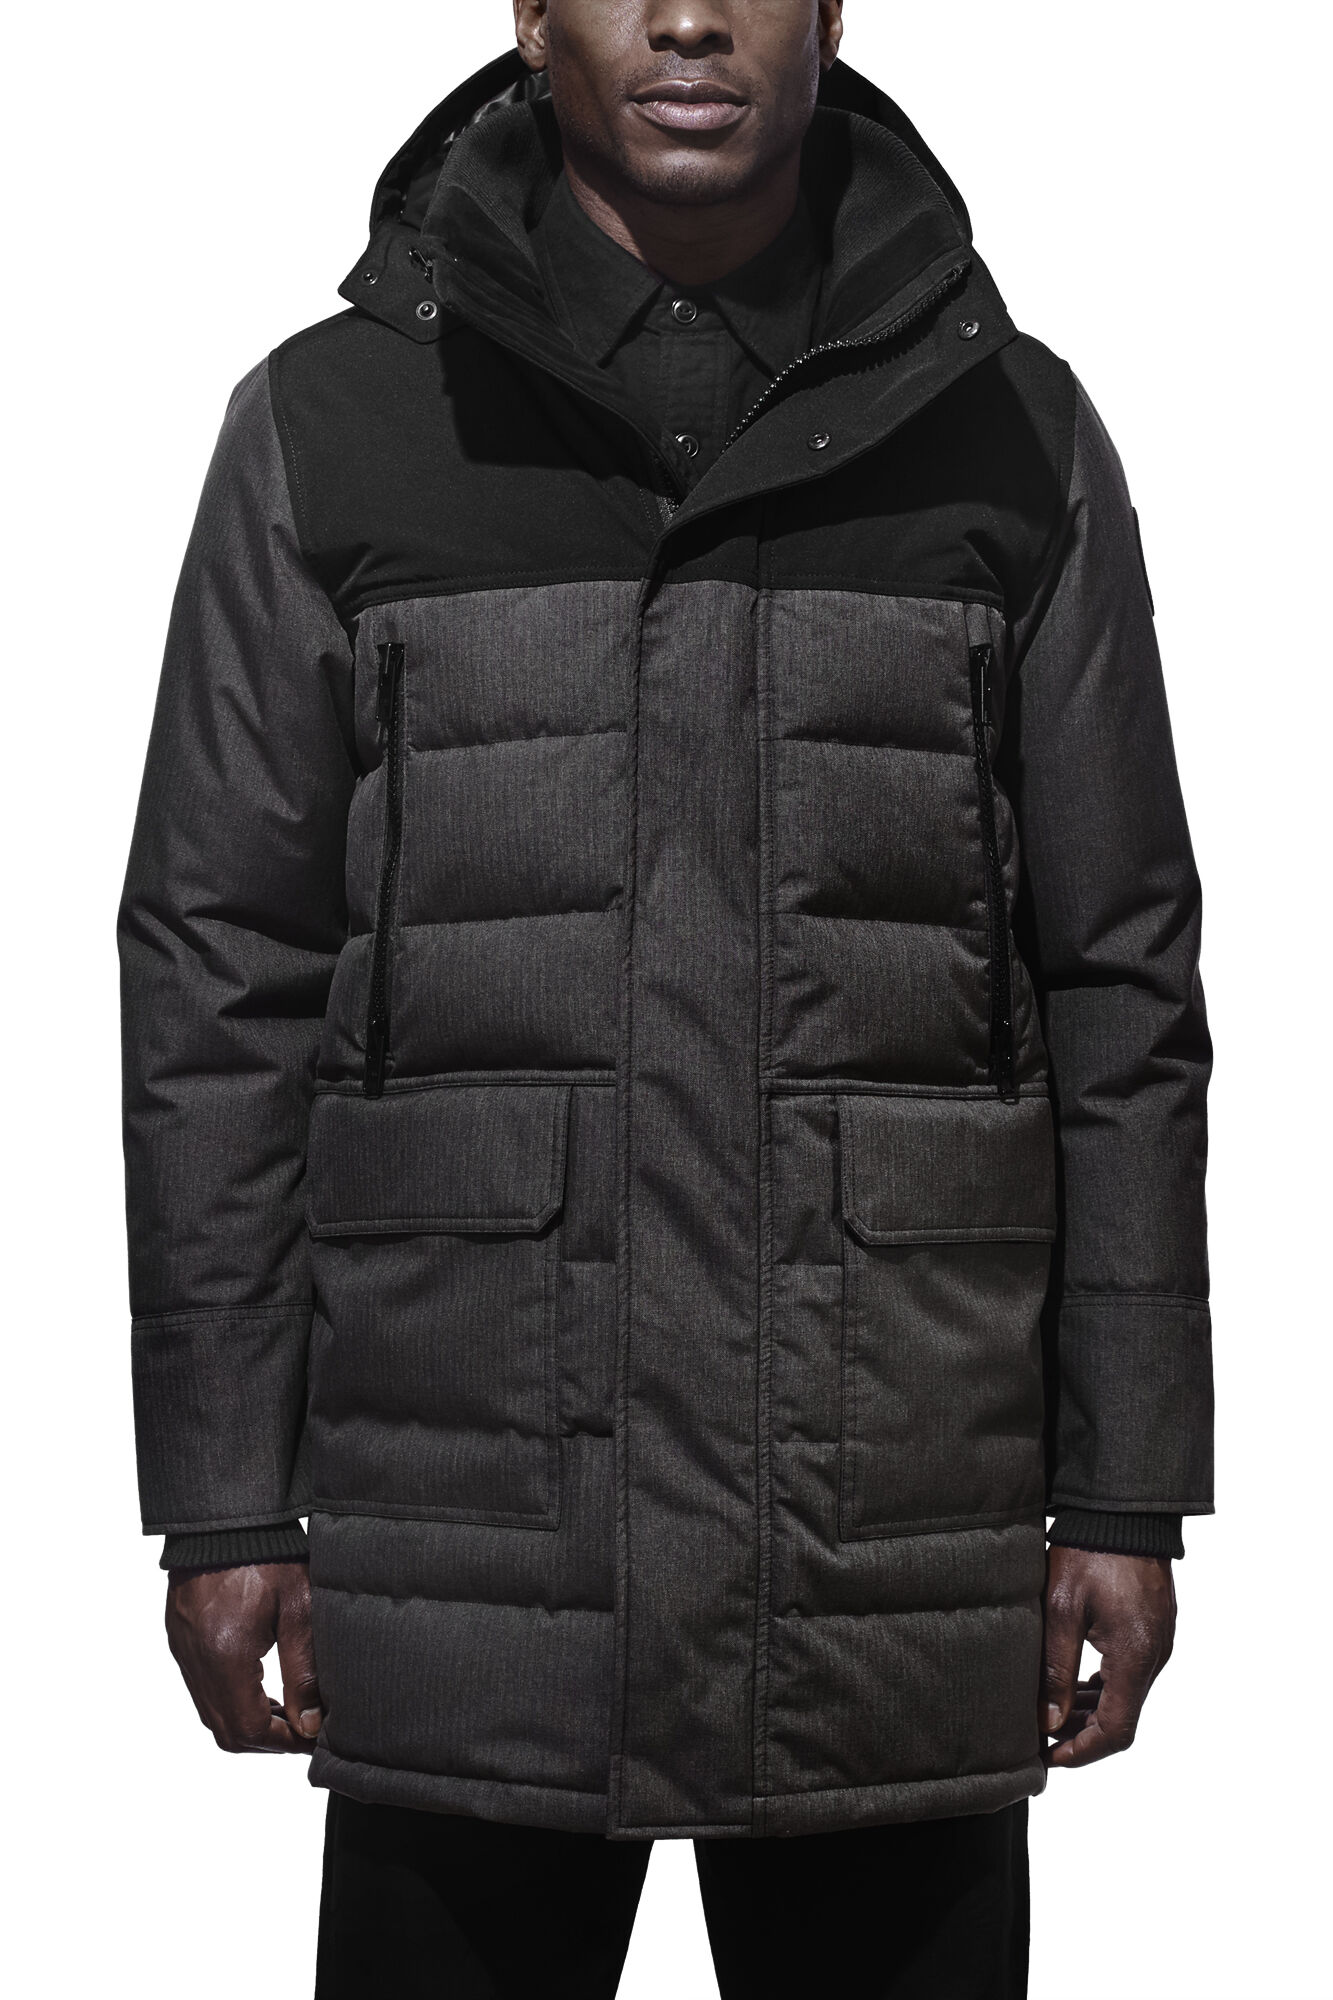 Canada Goose Black Label Review